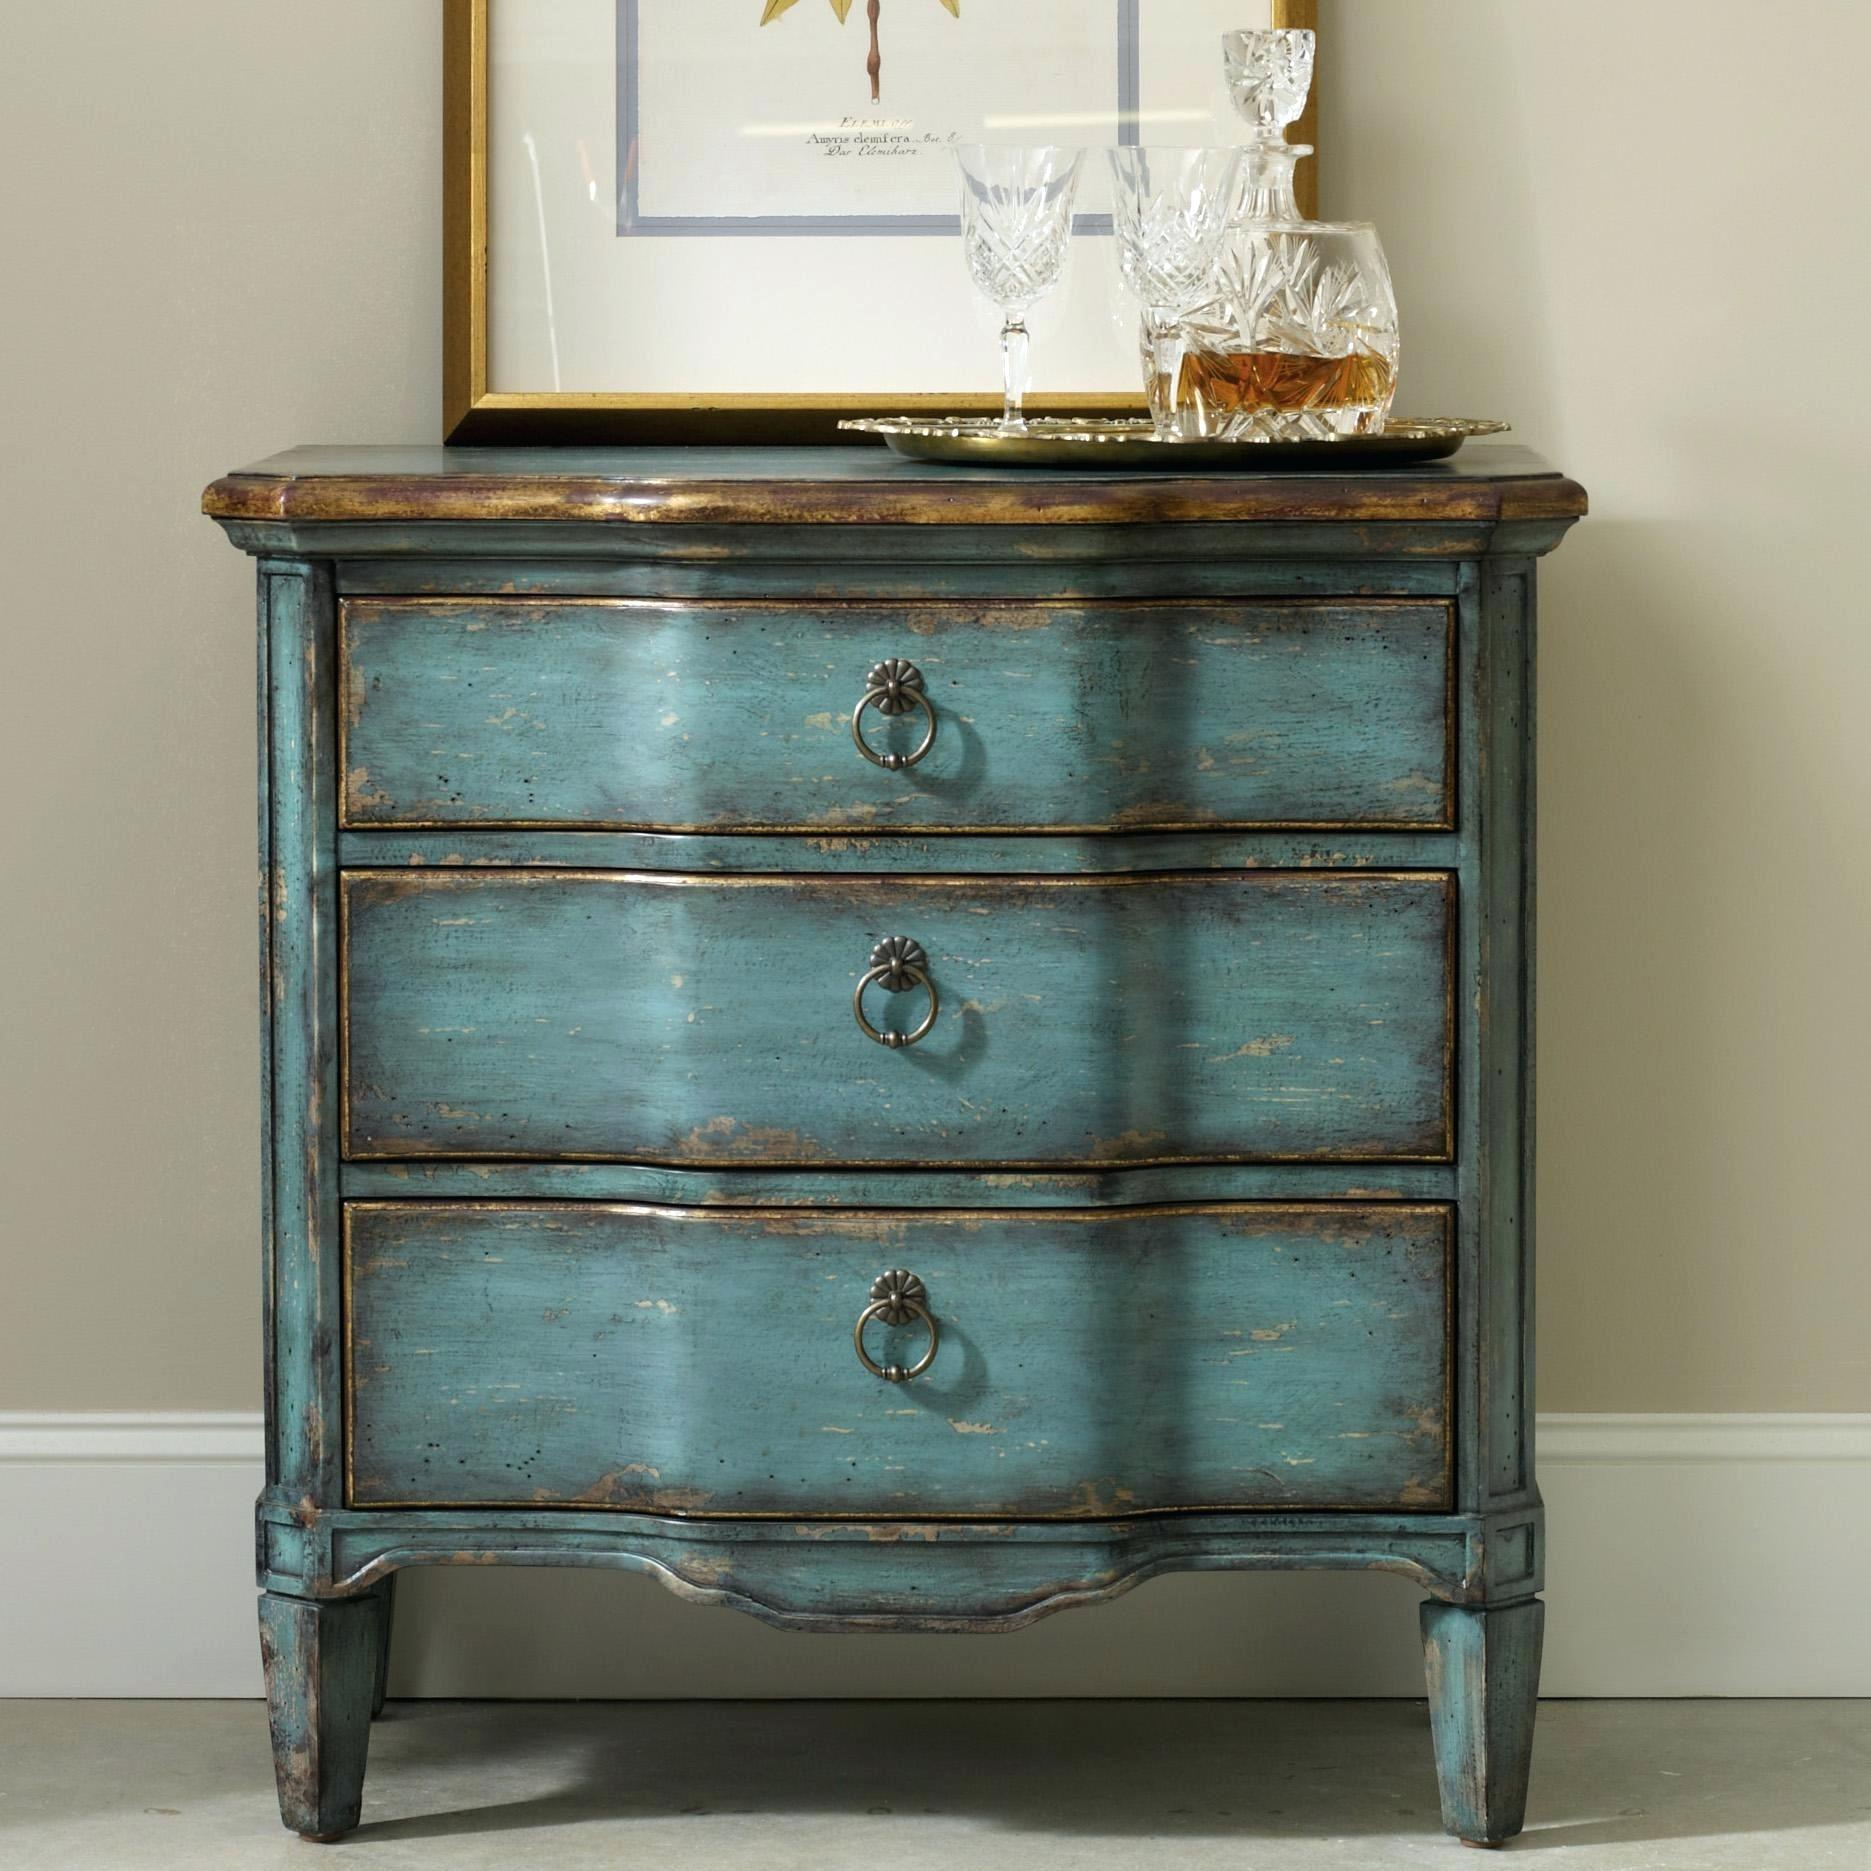 accent furniture for small spaces hooker living room accents three drawer turquoise chest with shaped front bedroom ideas tables little round side table bench seat concrete and